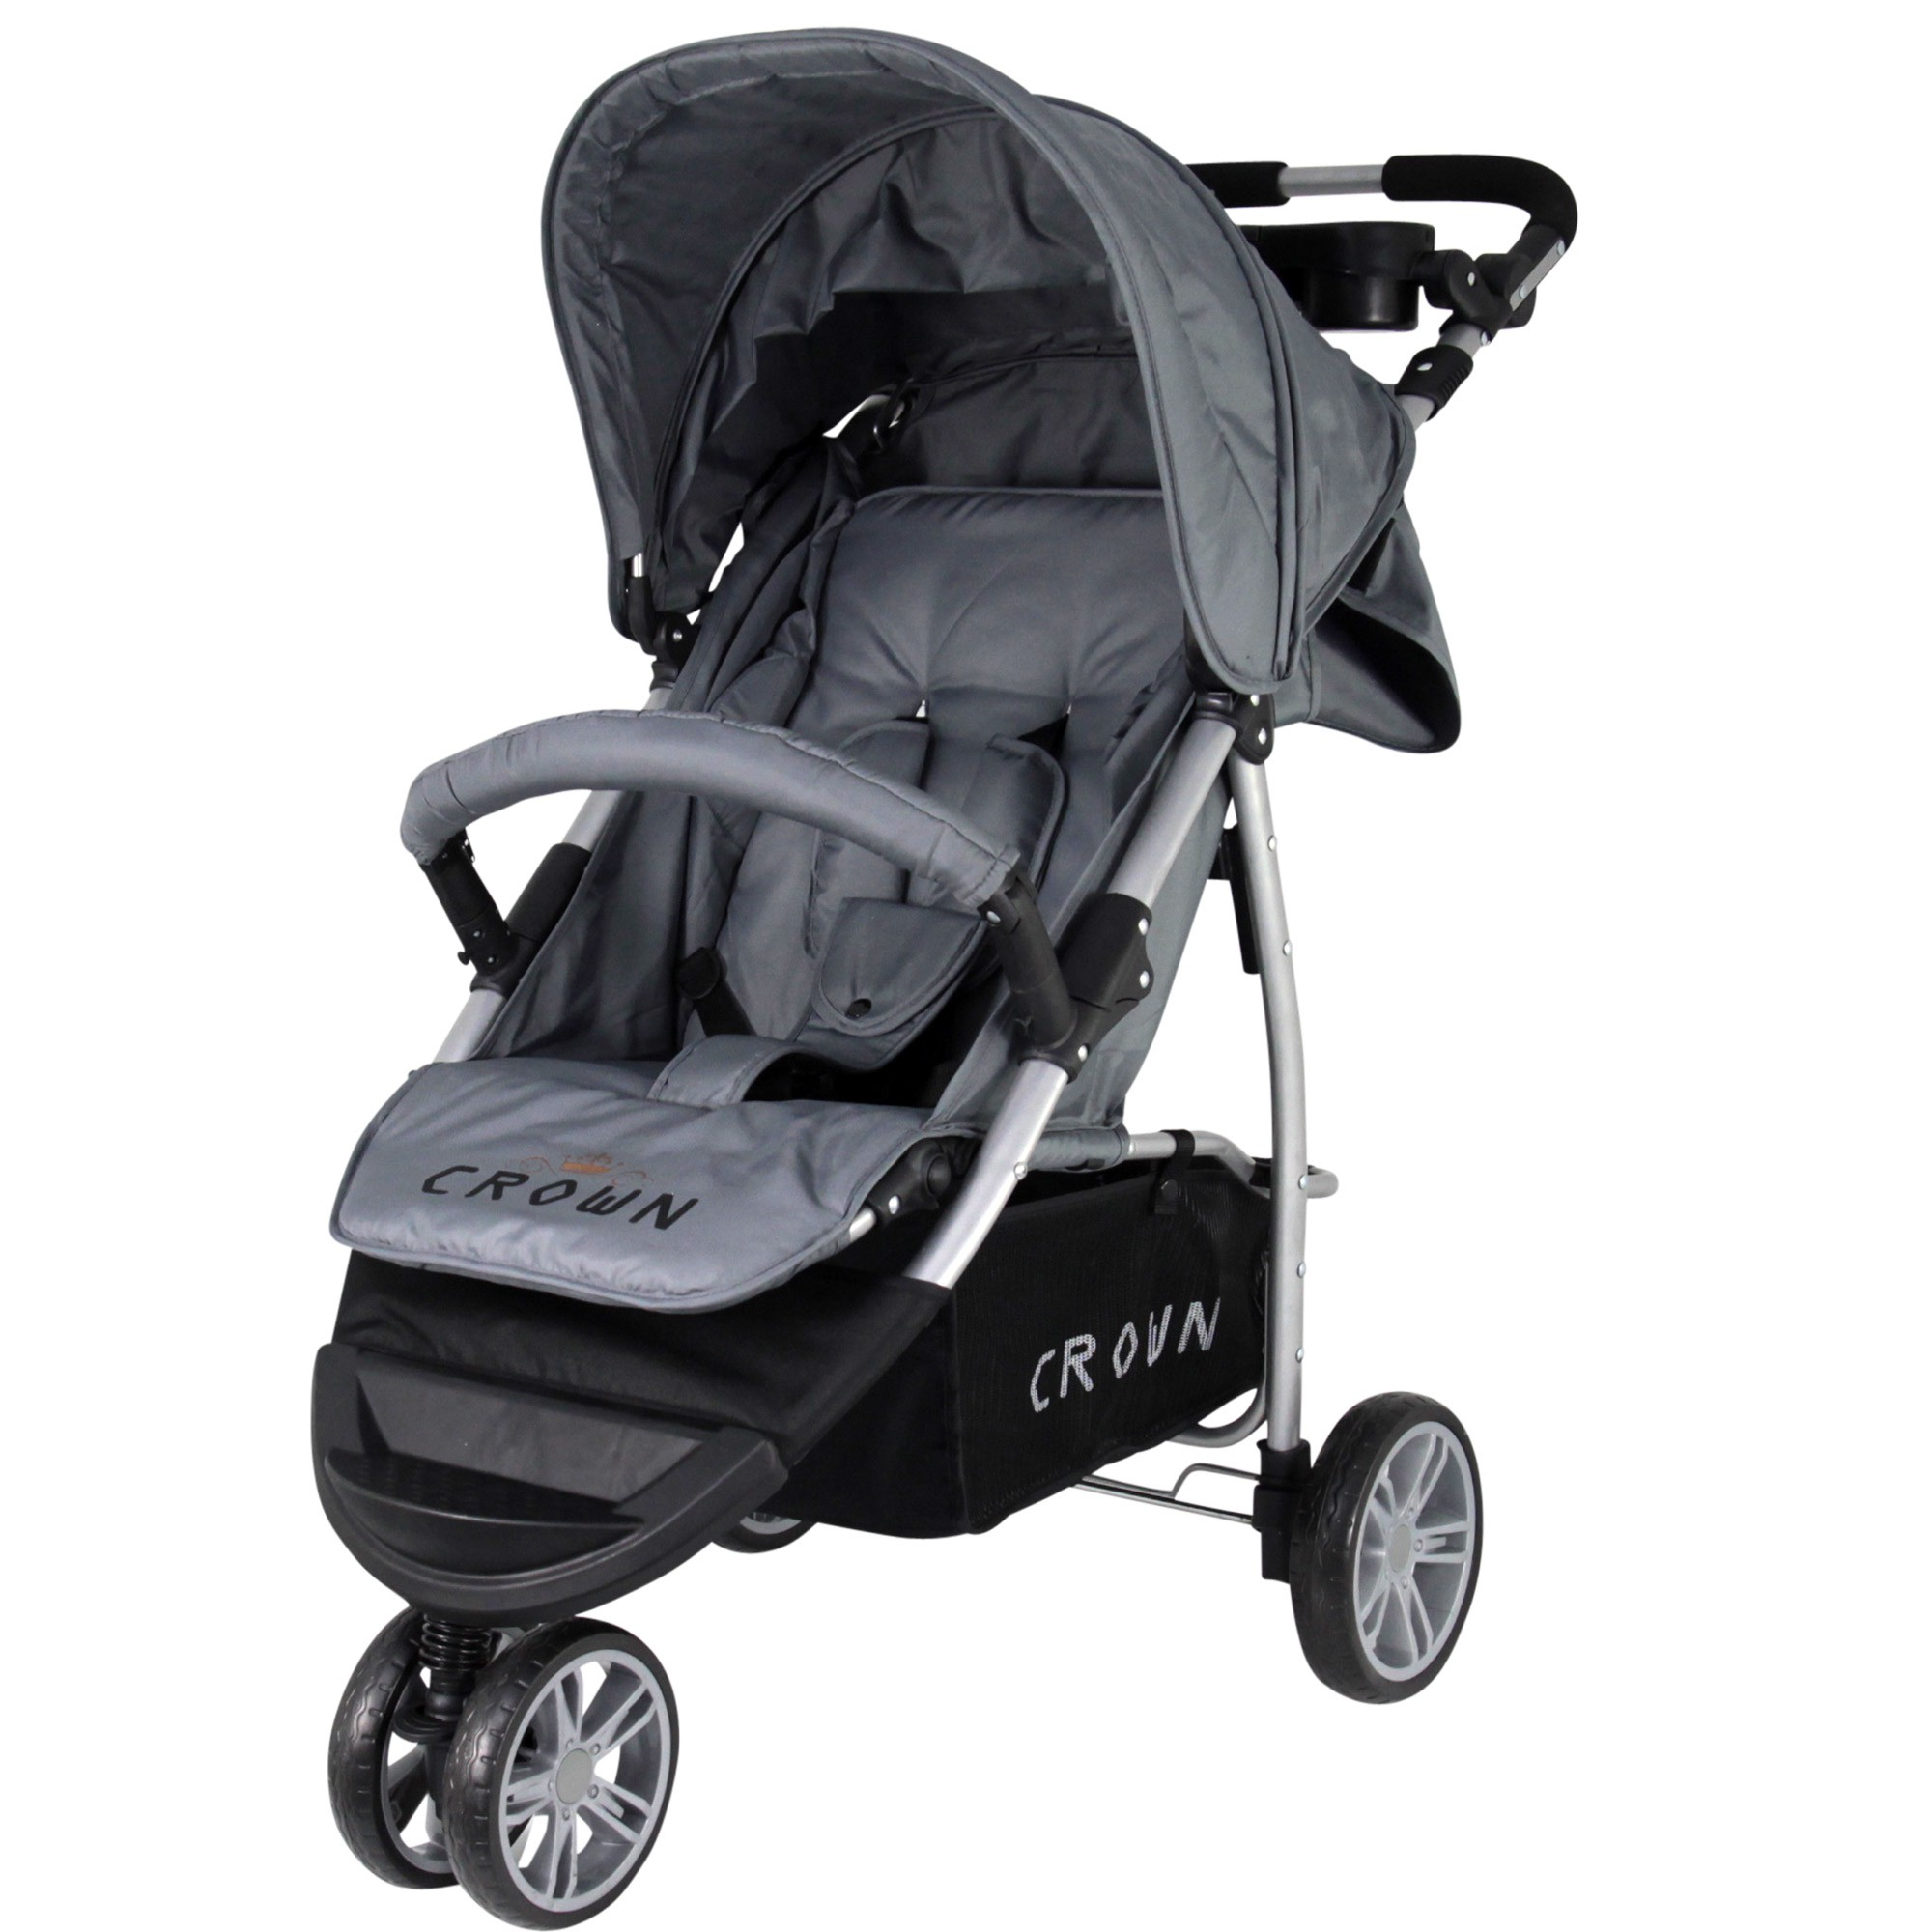 st712 crown kinderwagen buggy sport jogger farbe grey kinderwagen buggy. Black Bedroom Furniture Sets. Home Design Ideas